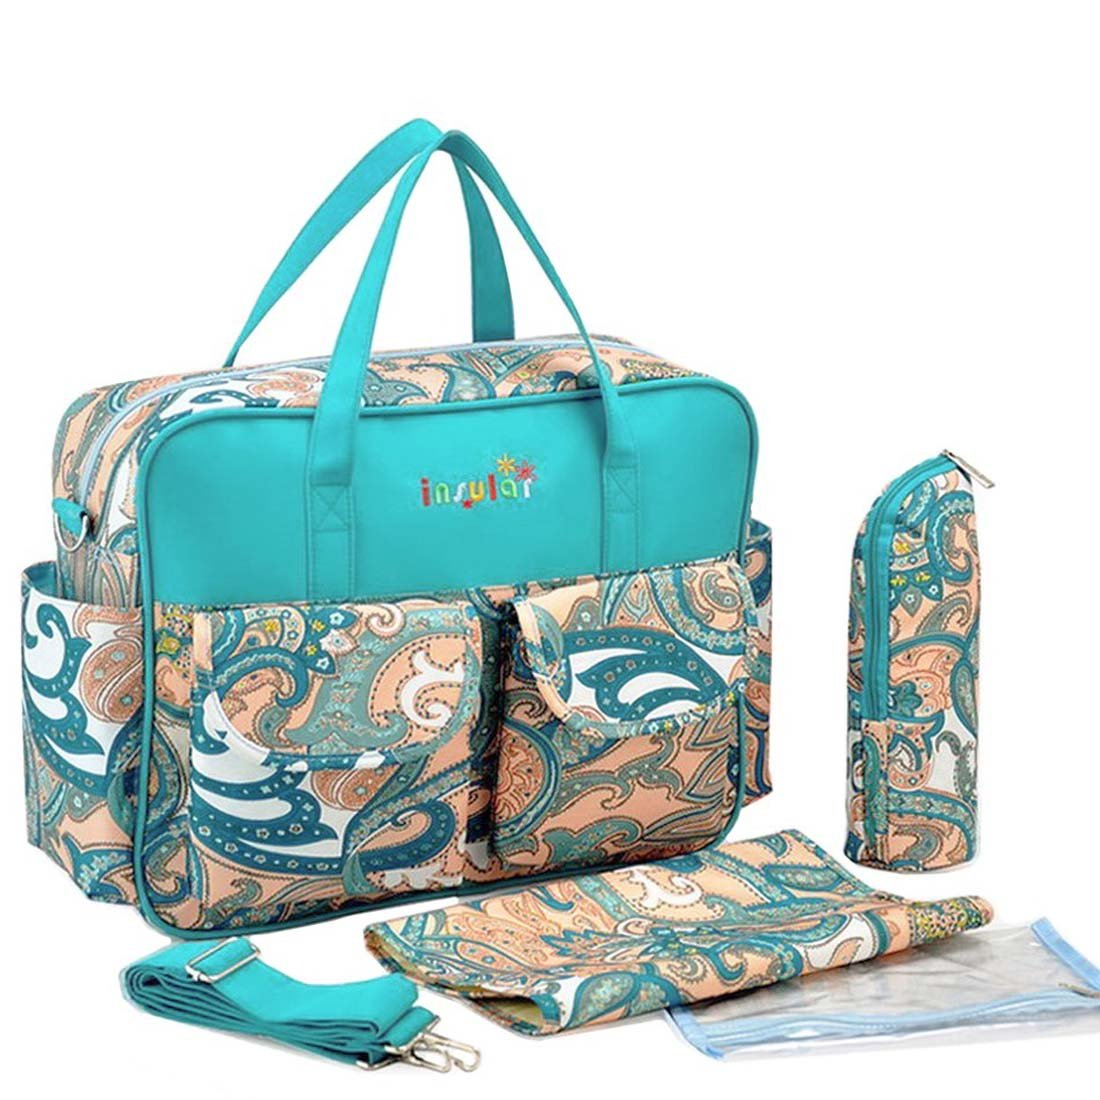 KF Baby Rox Diaper Bag Value Set, with Crossbody bag strap, Changing Pads, more kilofly